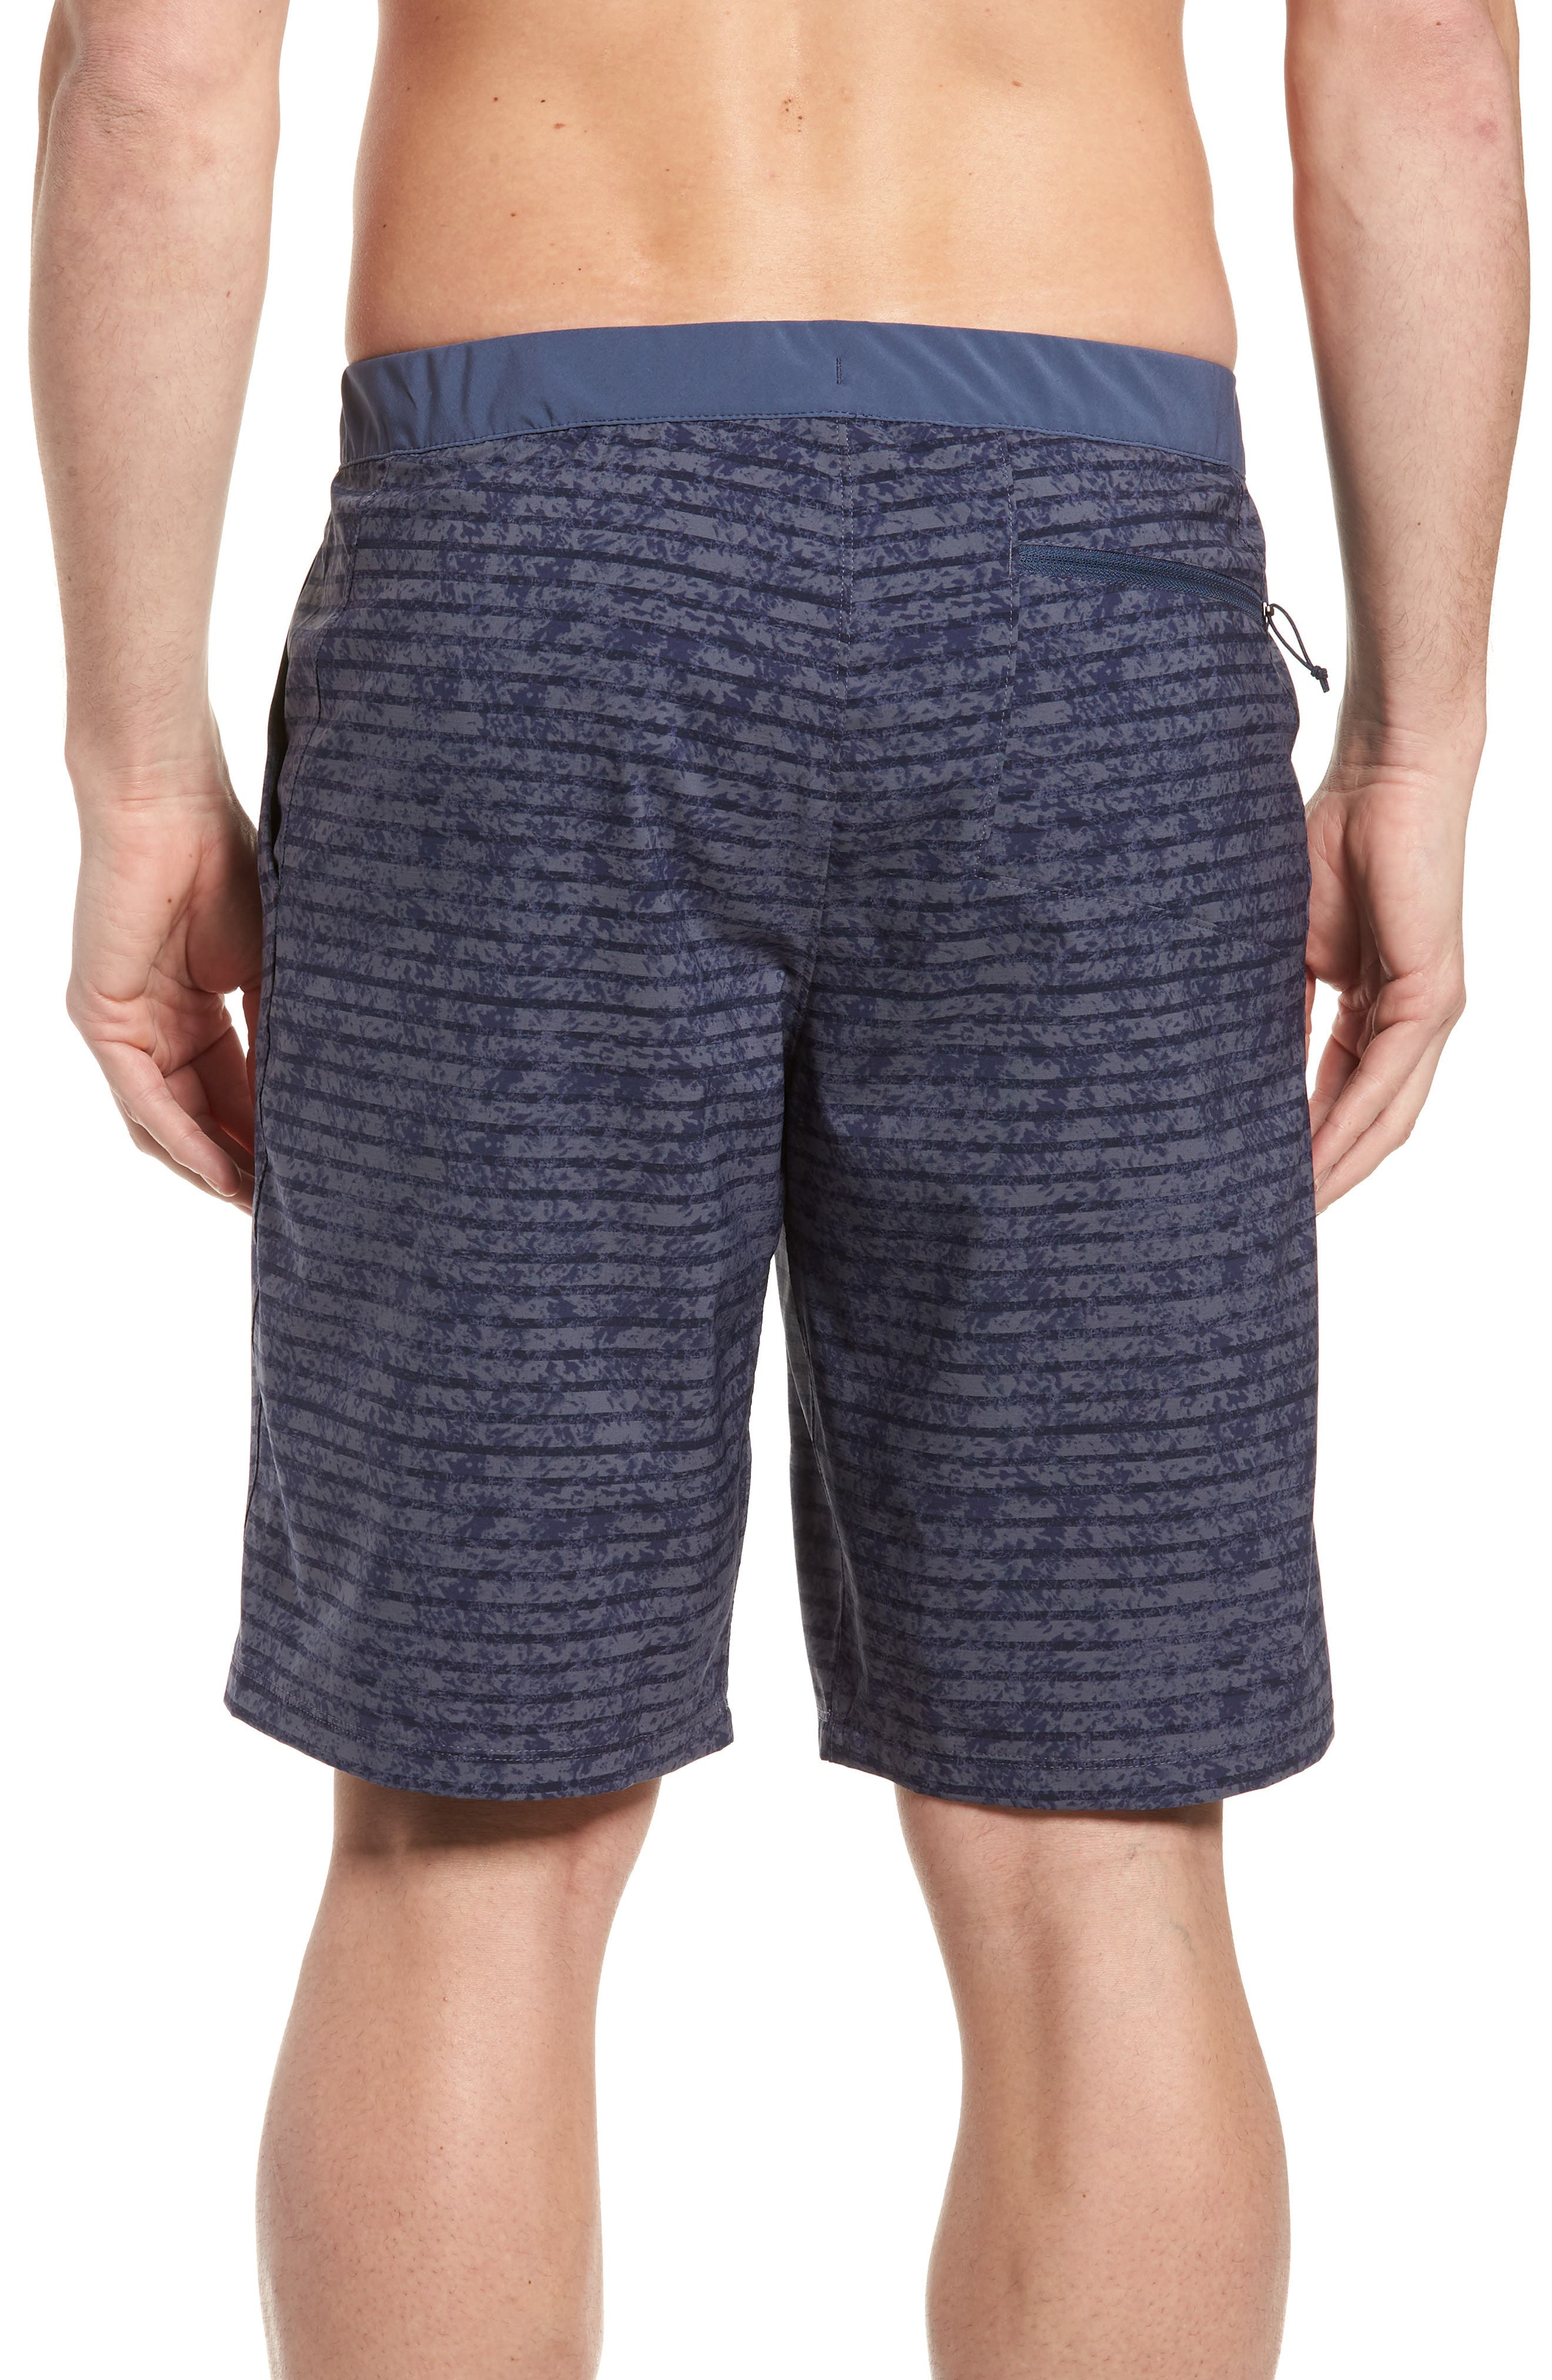 Terrebonne Shorts,                             Alternate thumbnail 2, color,                             Rugby Rock/ Dolomite Blue